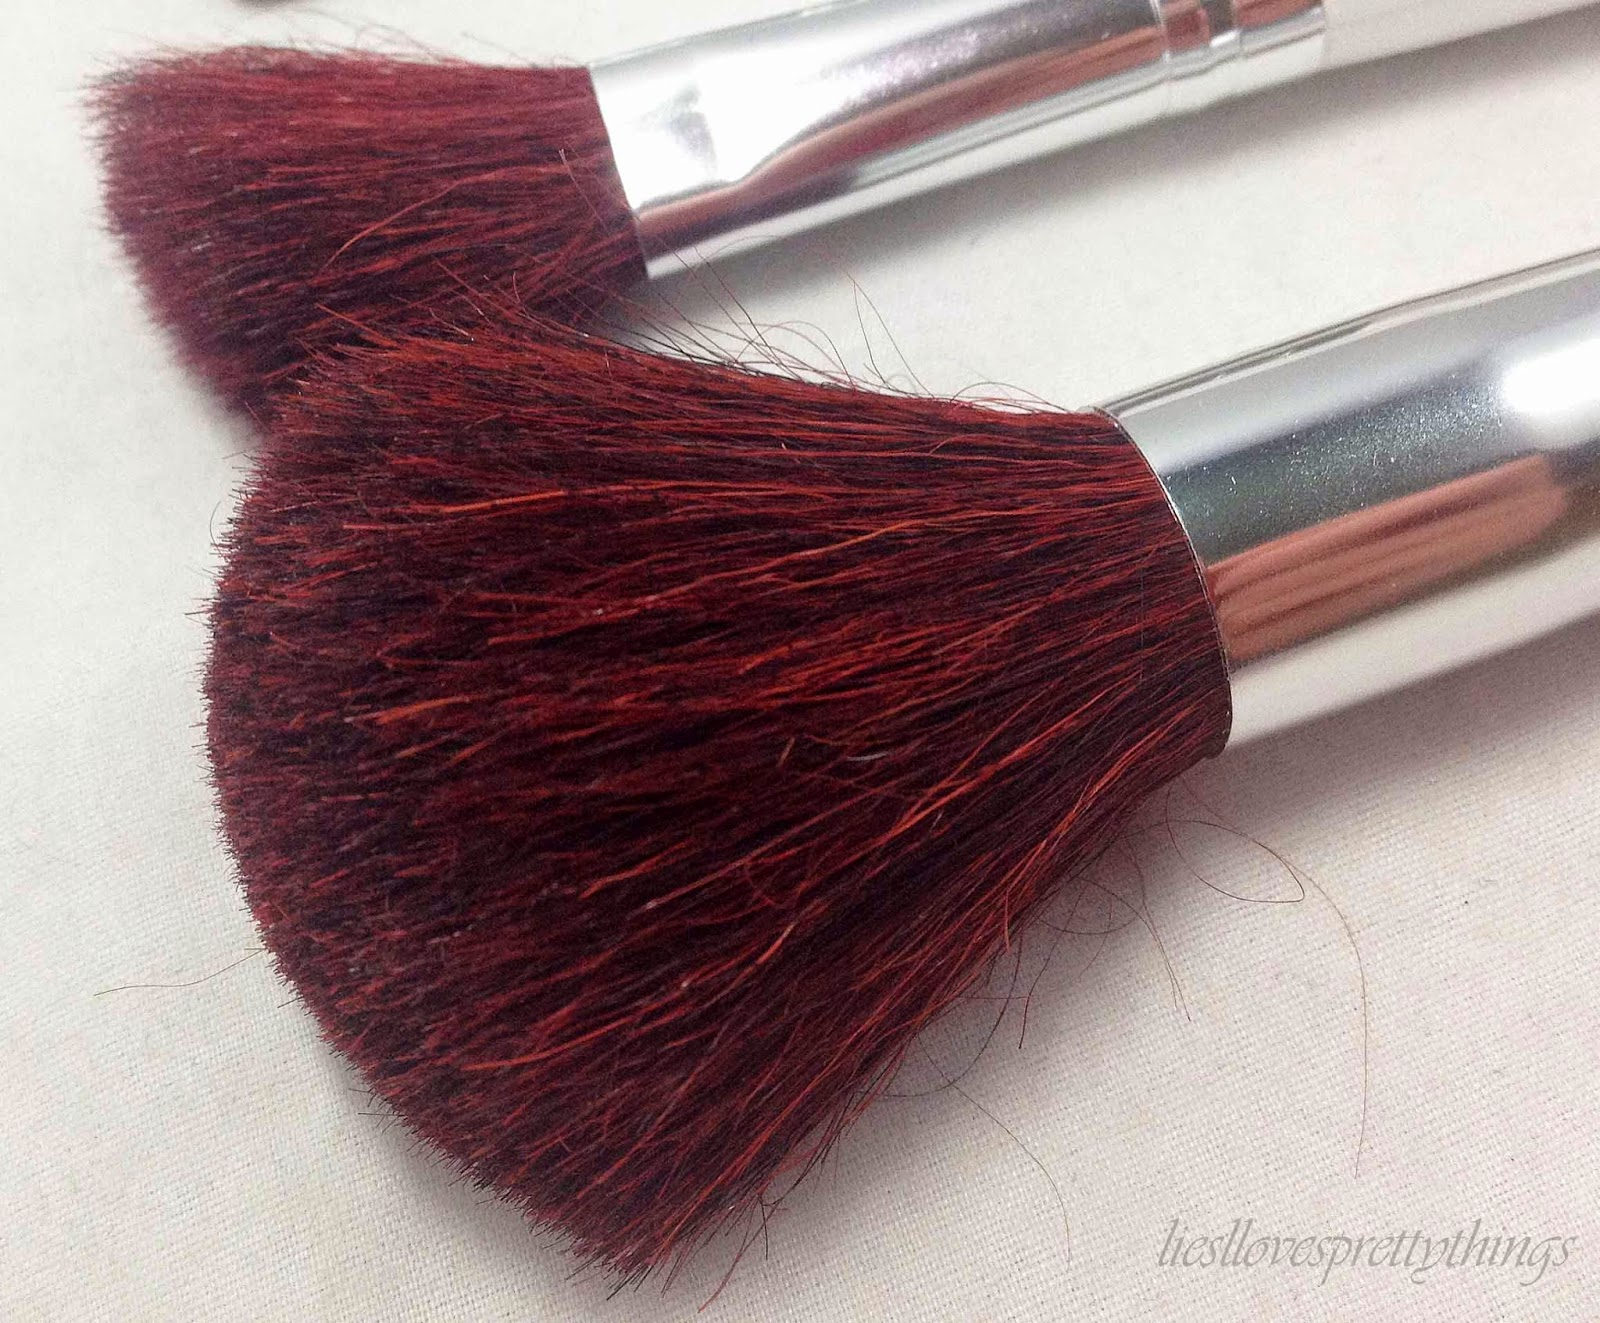 e.l.f. Essential Bronzing Brush review